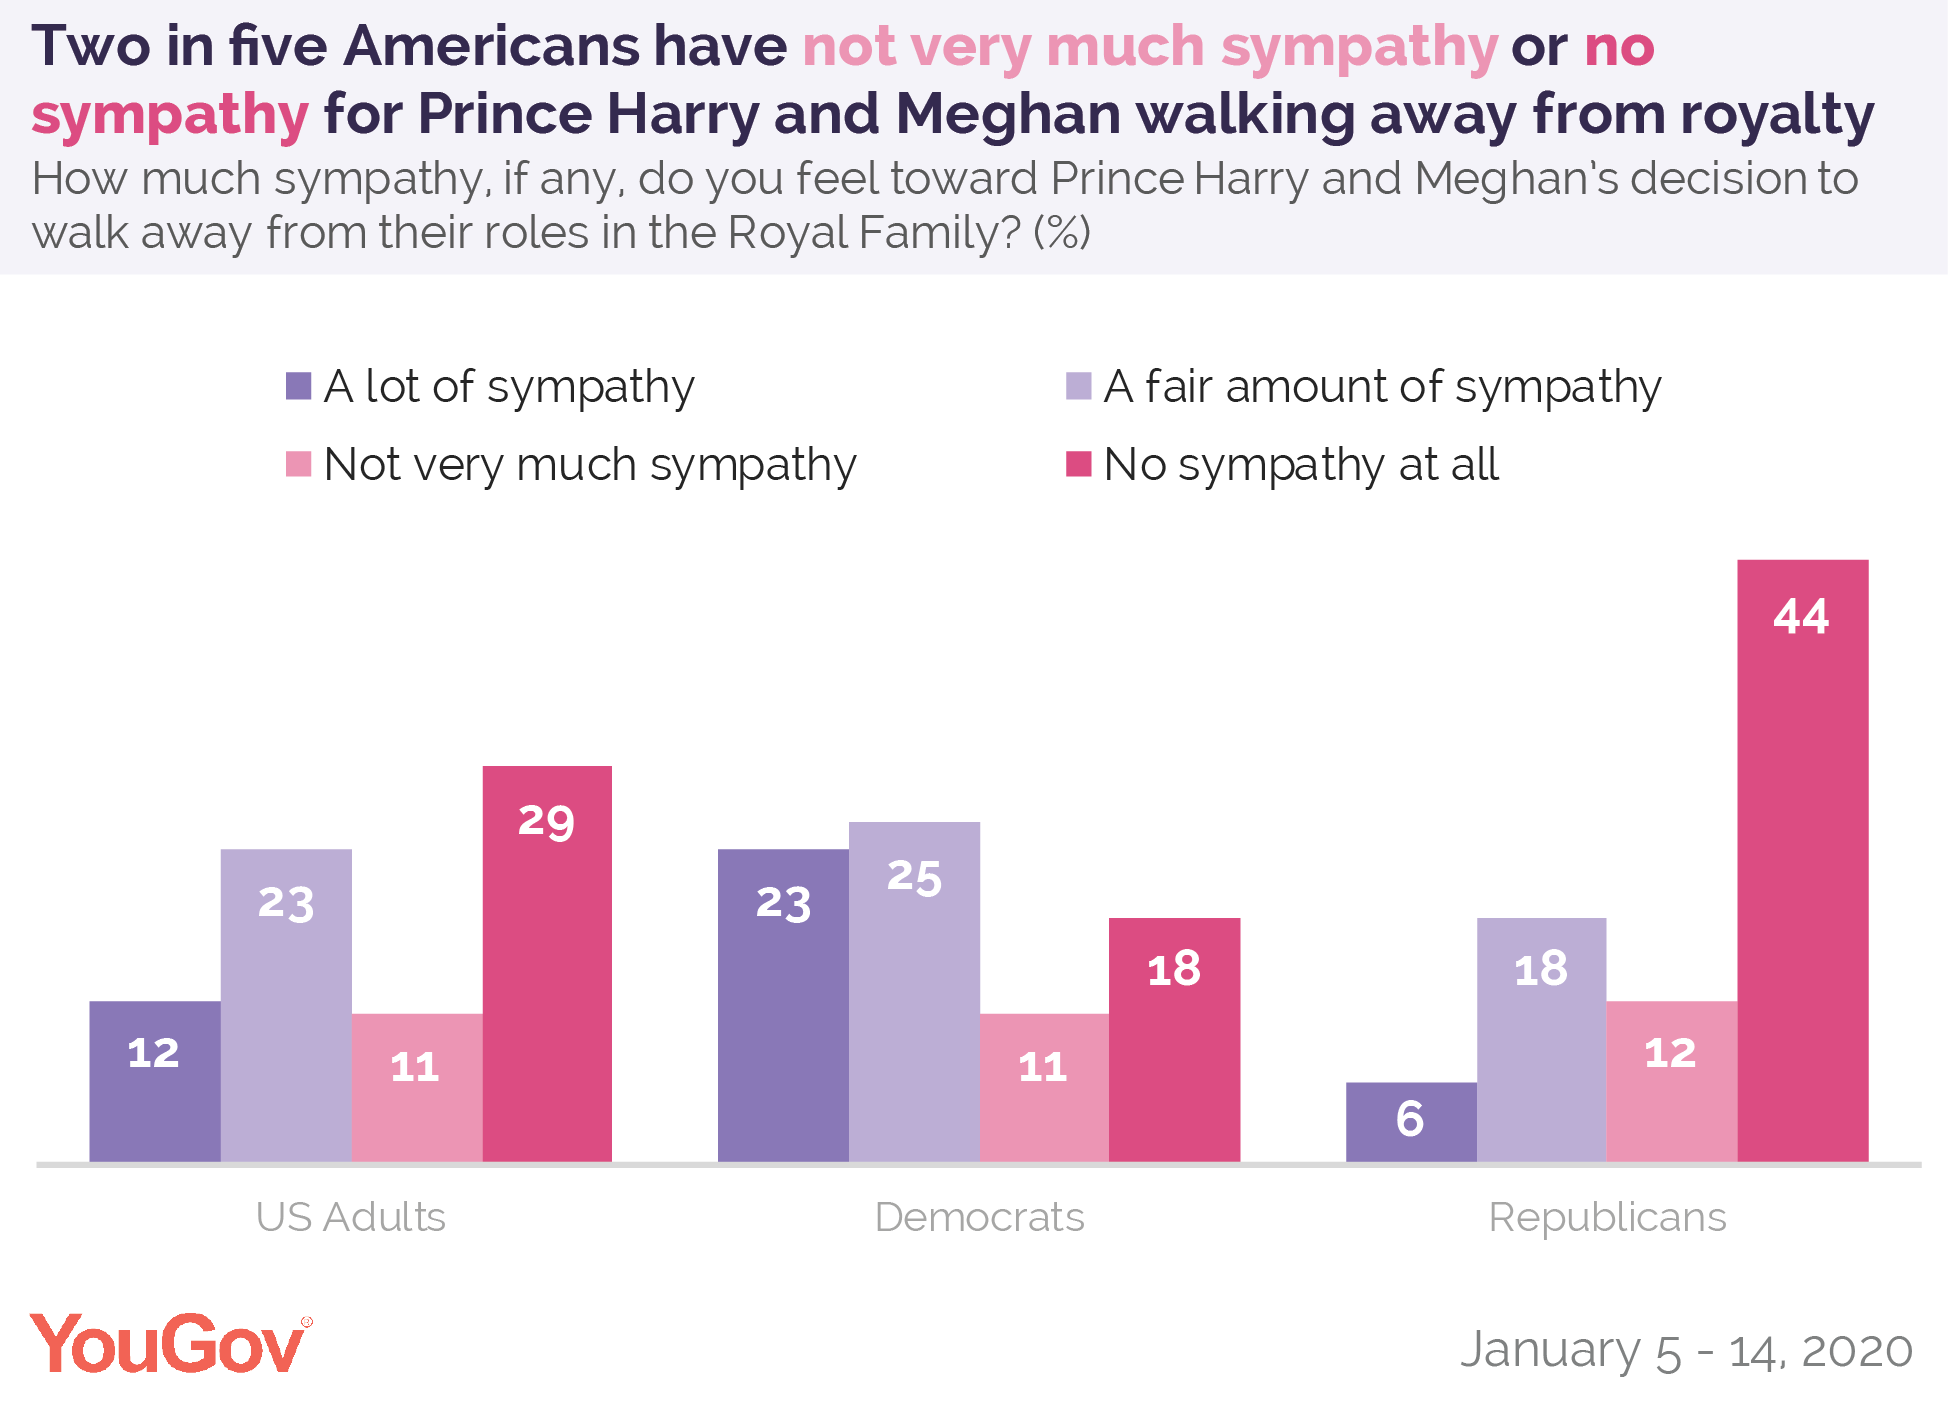 Two in five Americans have not very much sympathy or no sympathy for Prince Harry and Meghan walking away from royalty